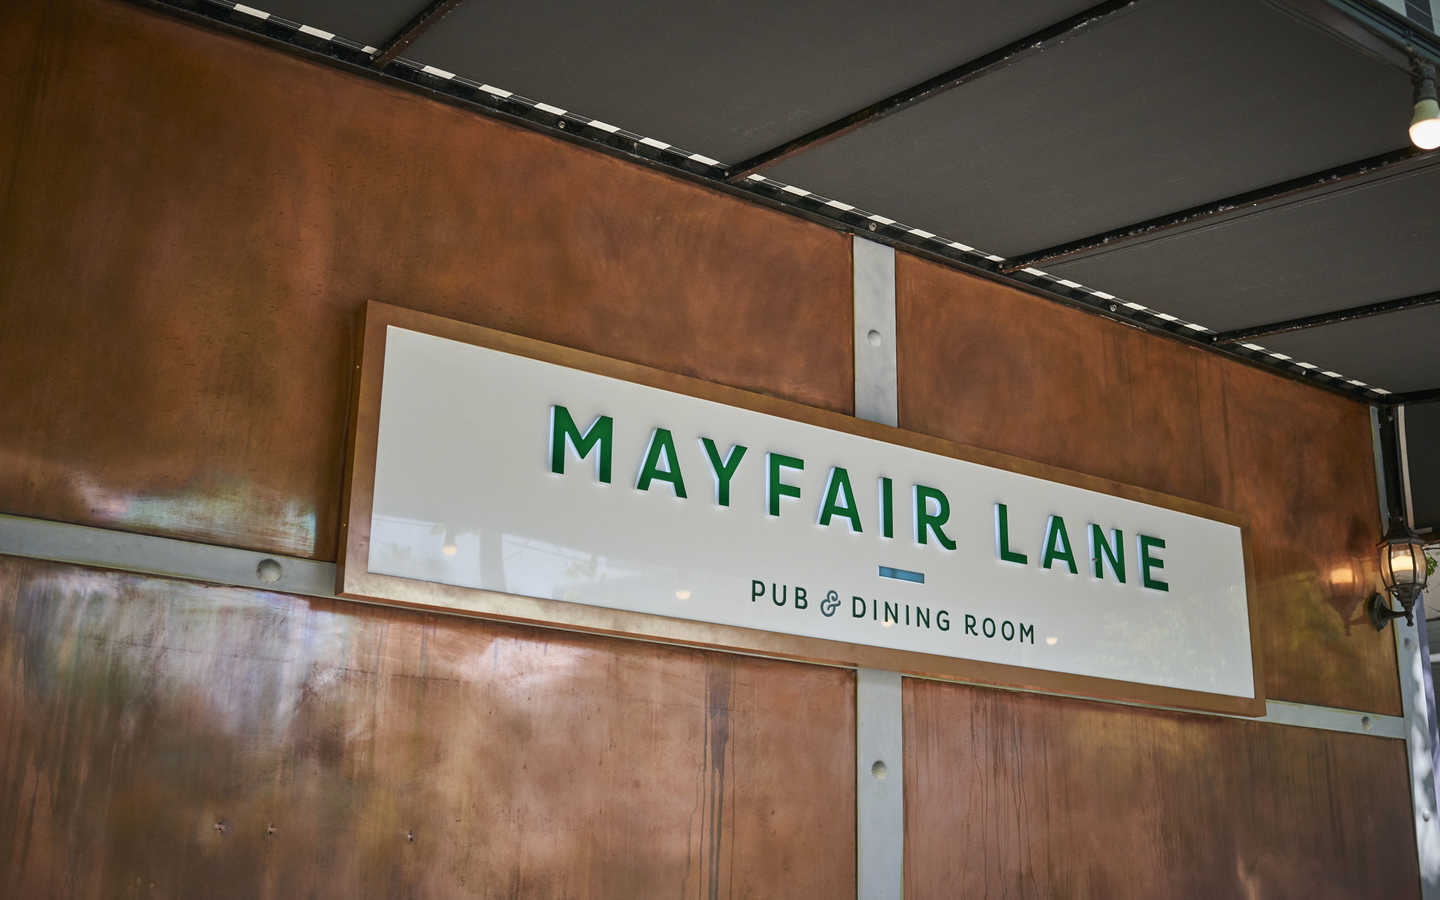 Mayfair Lane